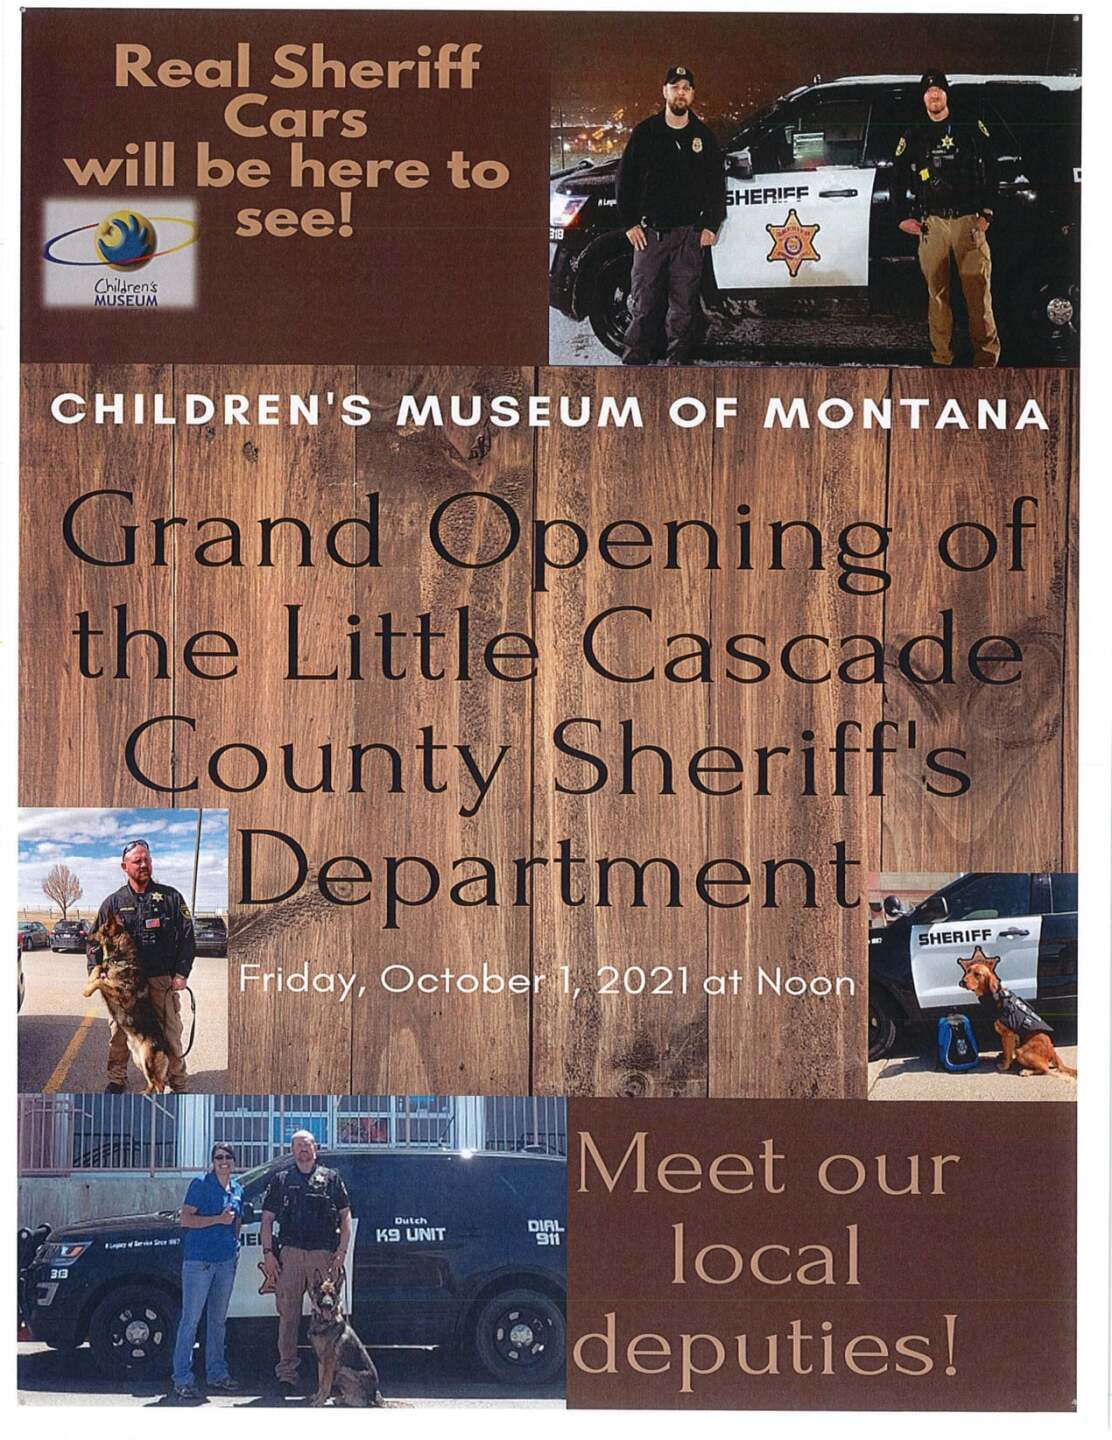 """""""Little Cascade County Sheriff's Department"""" at the Children's Museum of Montana"""